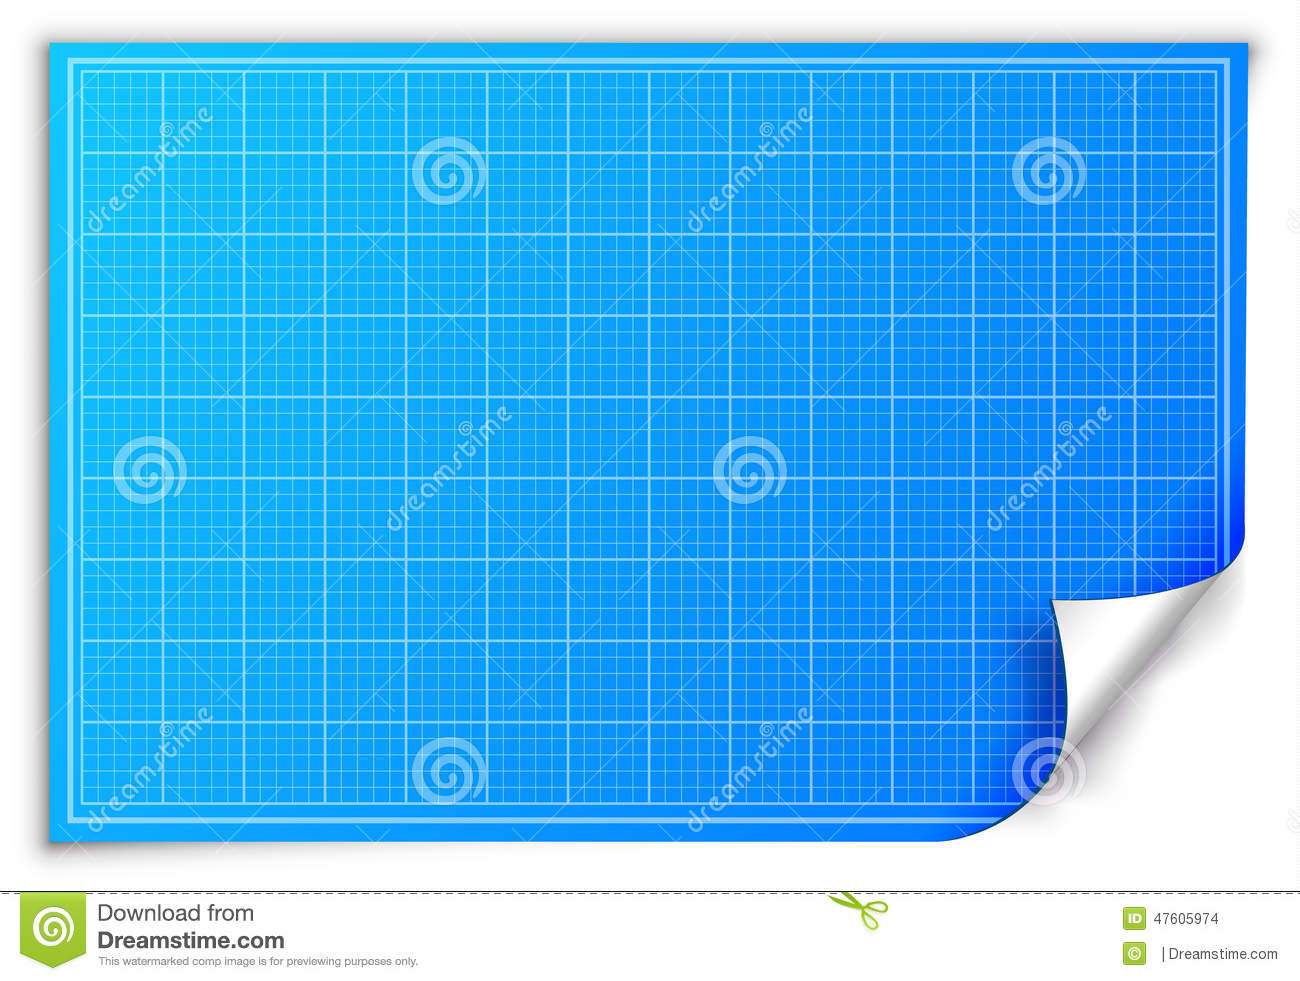 Architect blueprint paper background concept stock vector architect blueprint paper background concept royalty free vector malvernweather Image collections